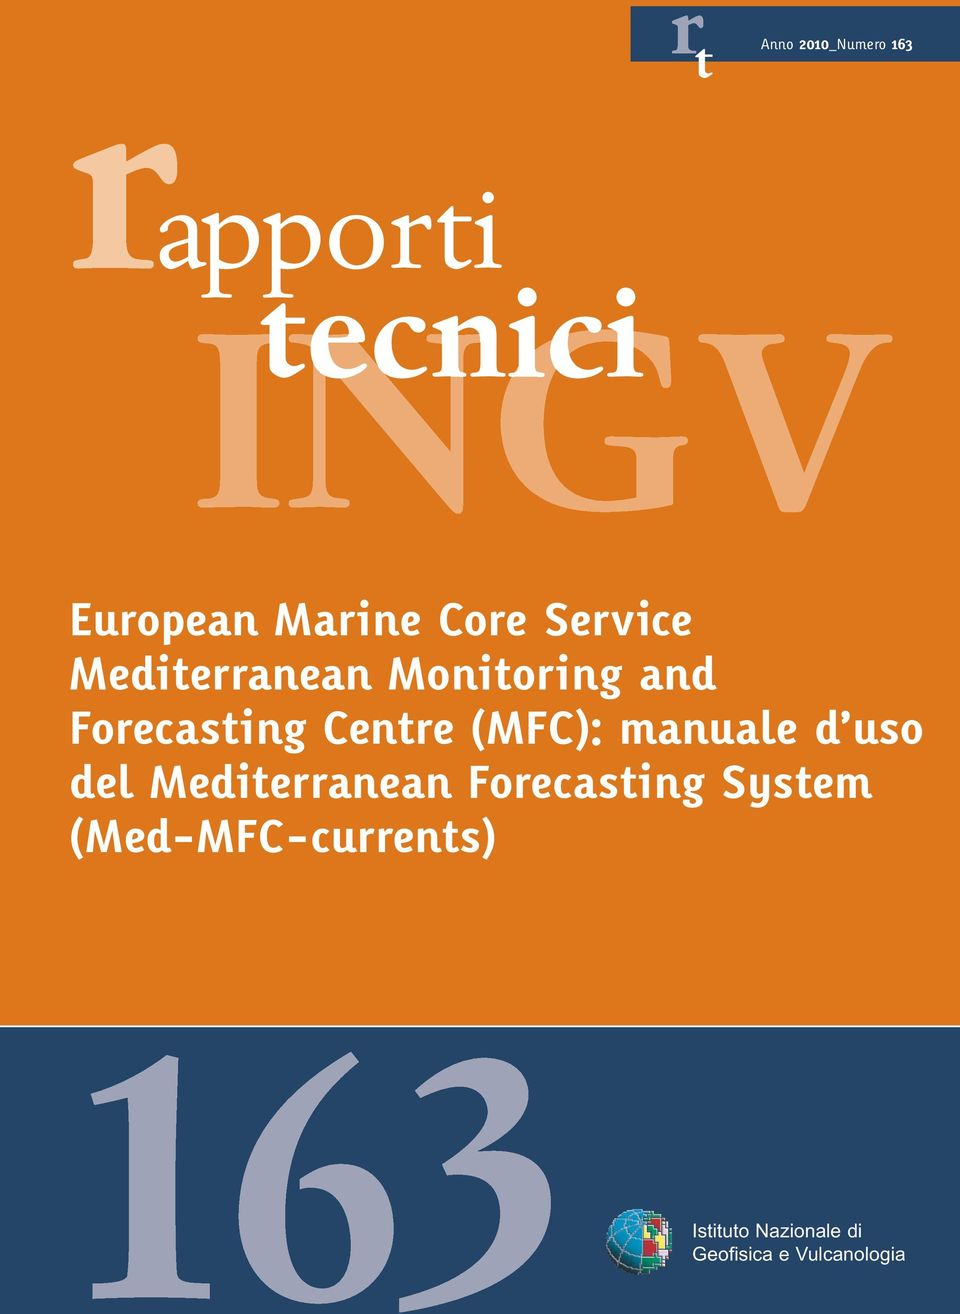 (MFC): manuale d uso del Mediterranean Forecasting System